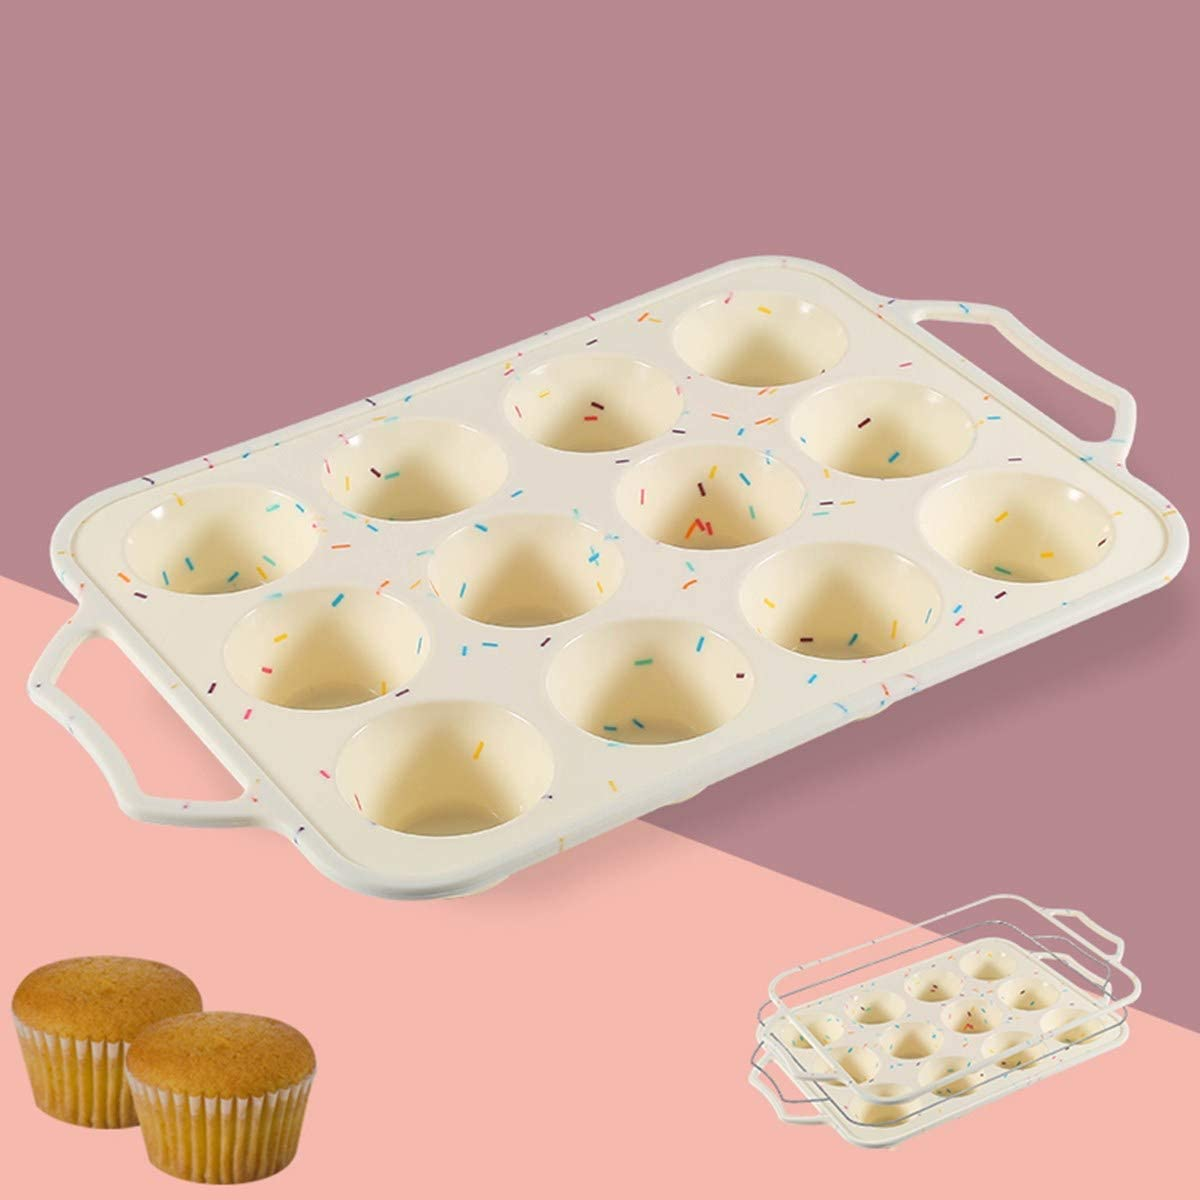 LINGSFIRE Brand Cheap Sale Venue Silicone Muffin Pan Max 79% OFF Pans with 12 Cups Nonstick